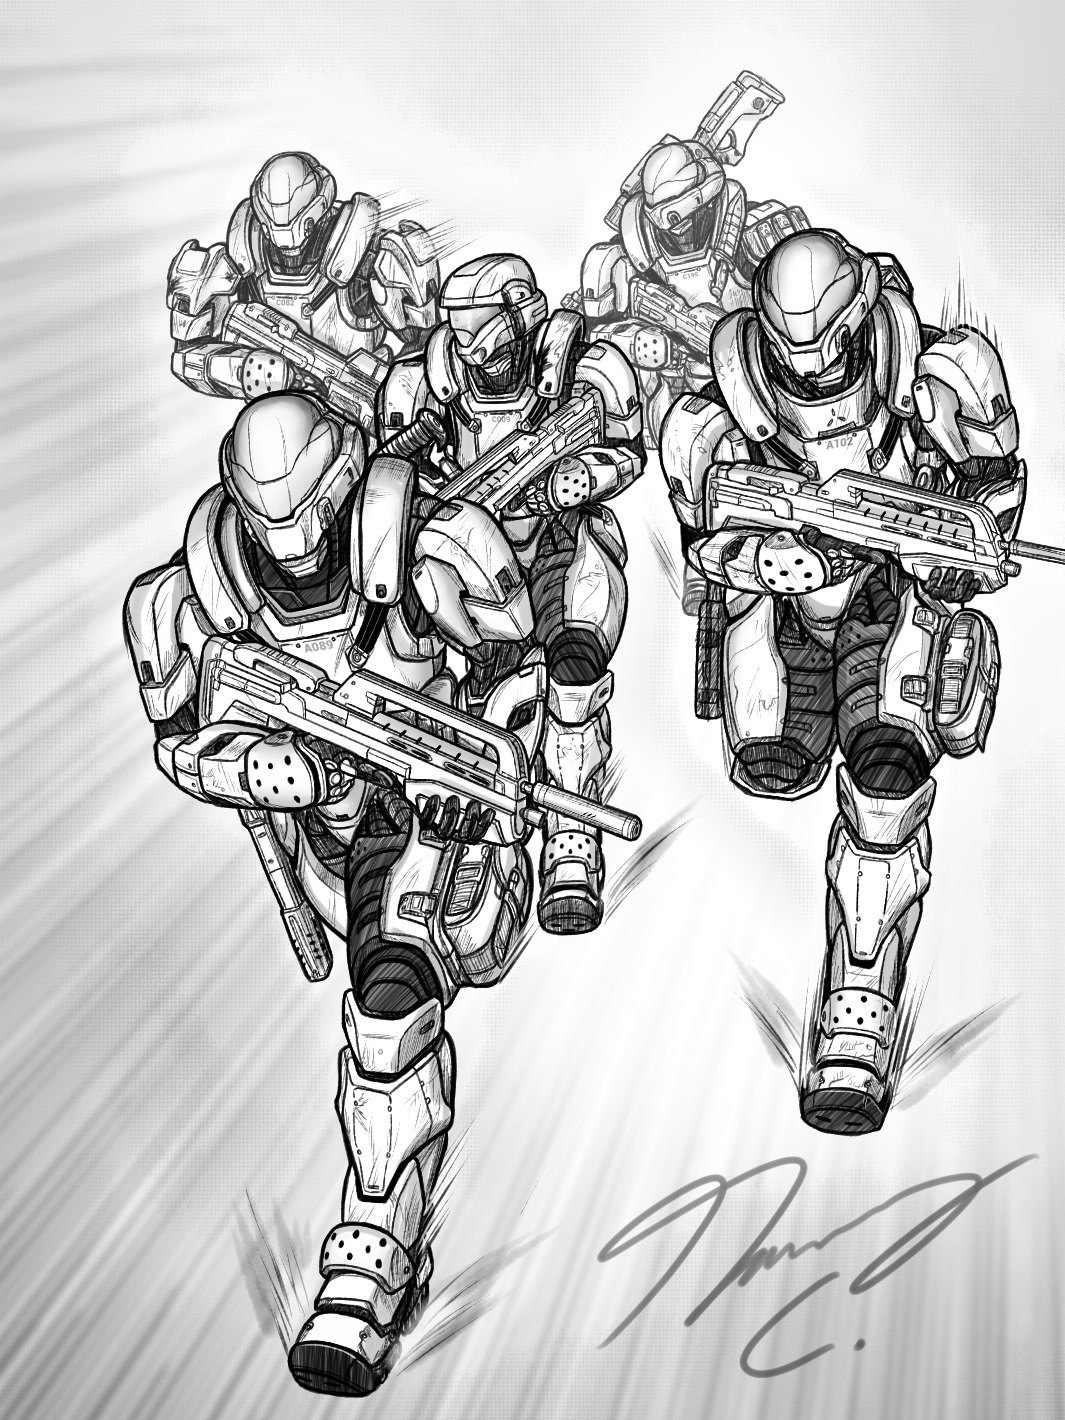 Halo-Ween 2019 - #27 Knock, Draw, Loose!